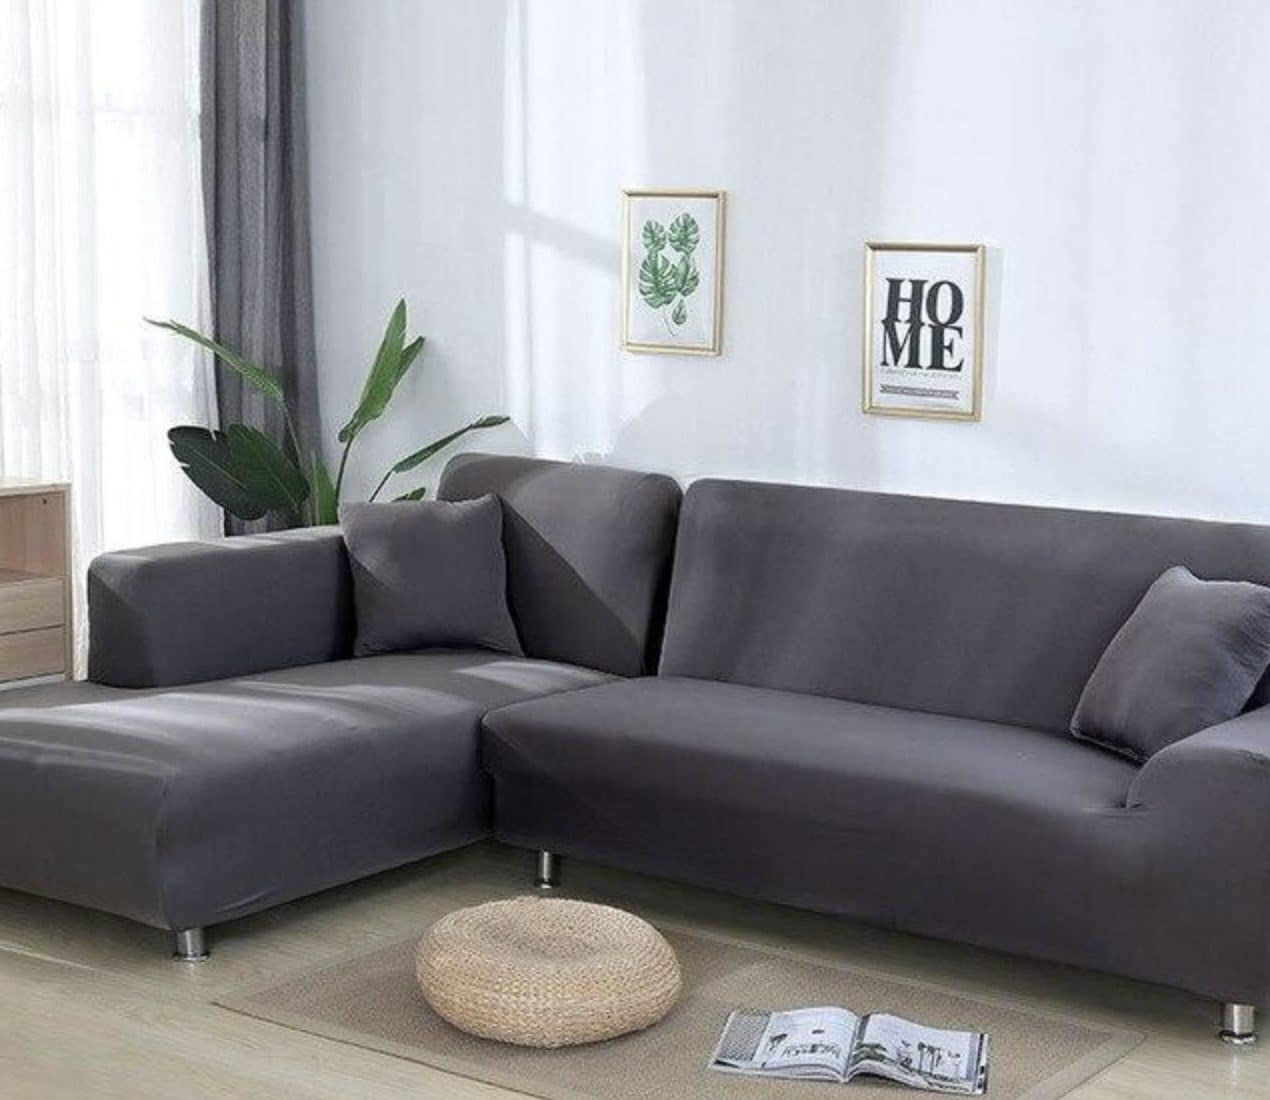 Discover Secrets to Maintaining L-Shaped Couch Covers So that It Stays As Good As New